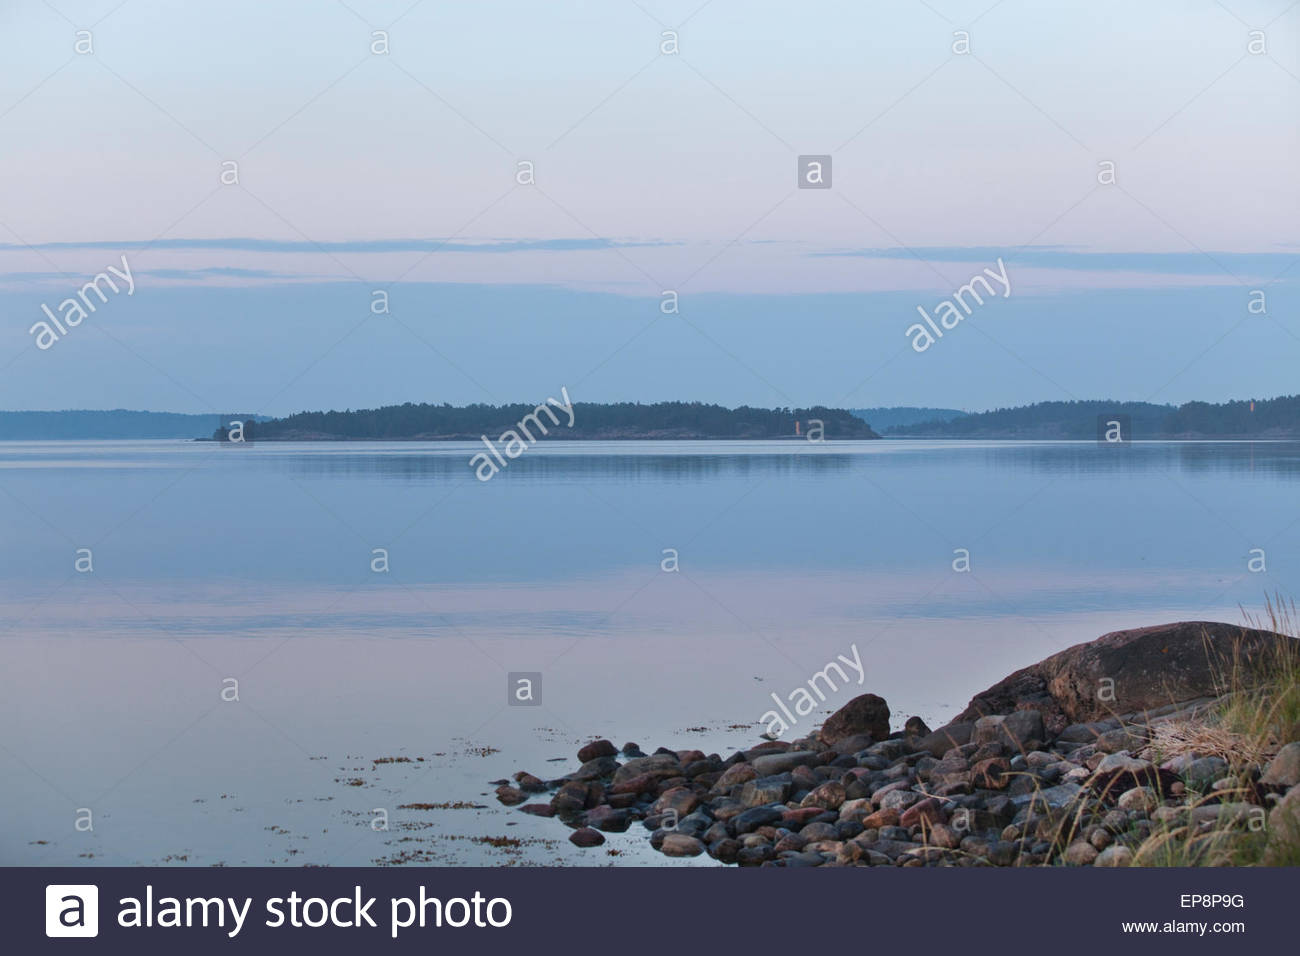 Finnish nature by the sea in summer - Stock Image